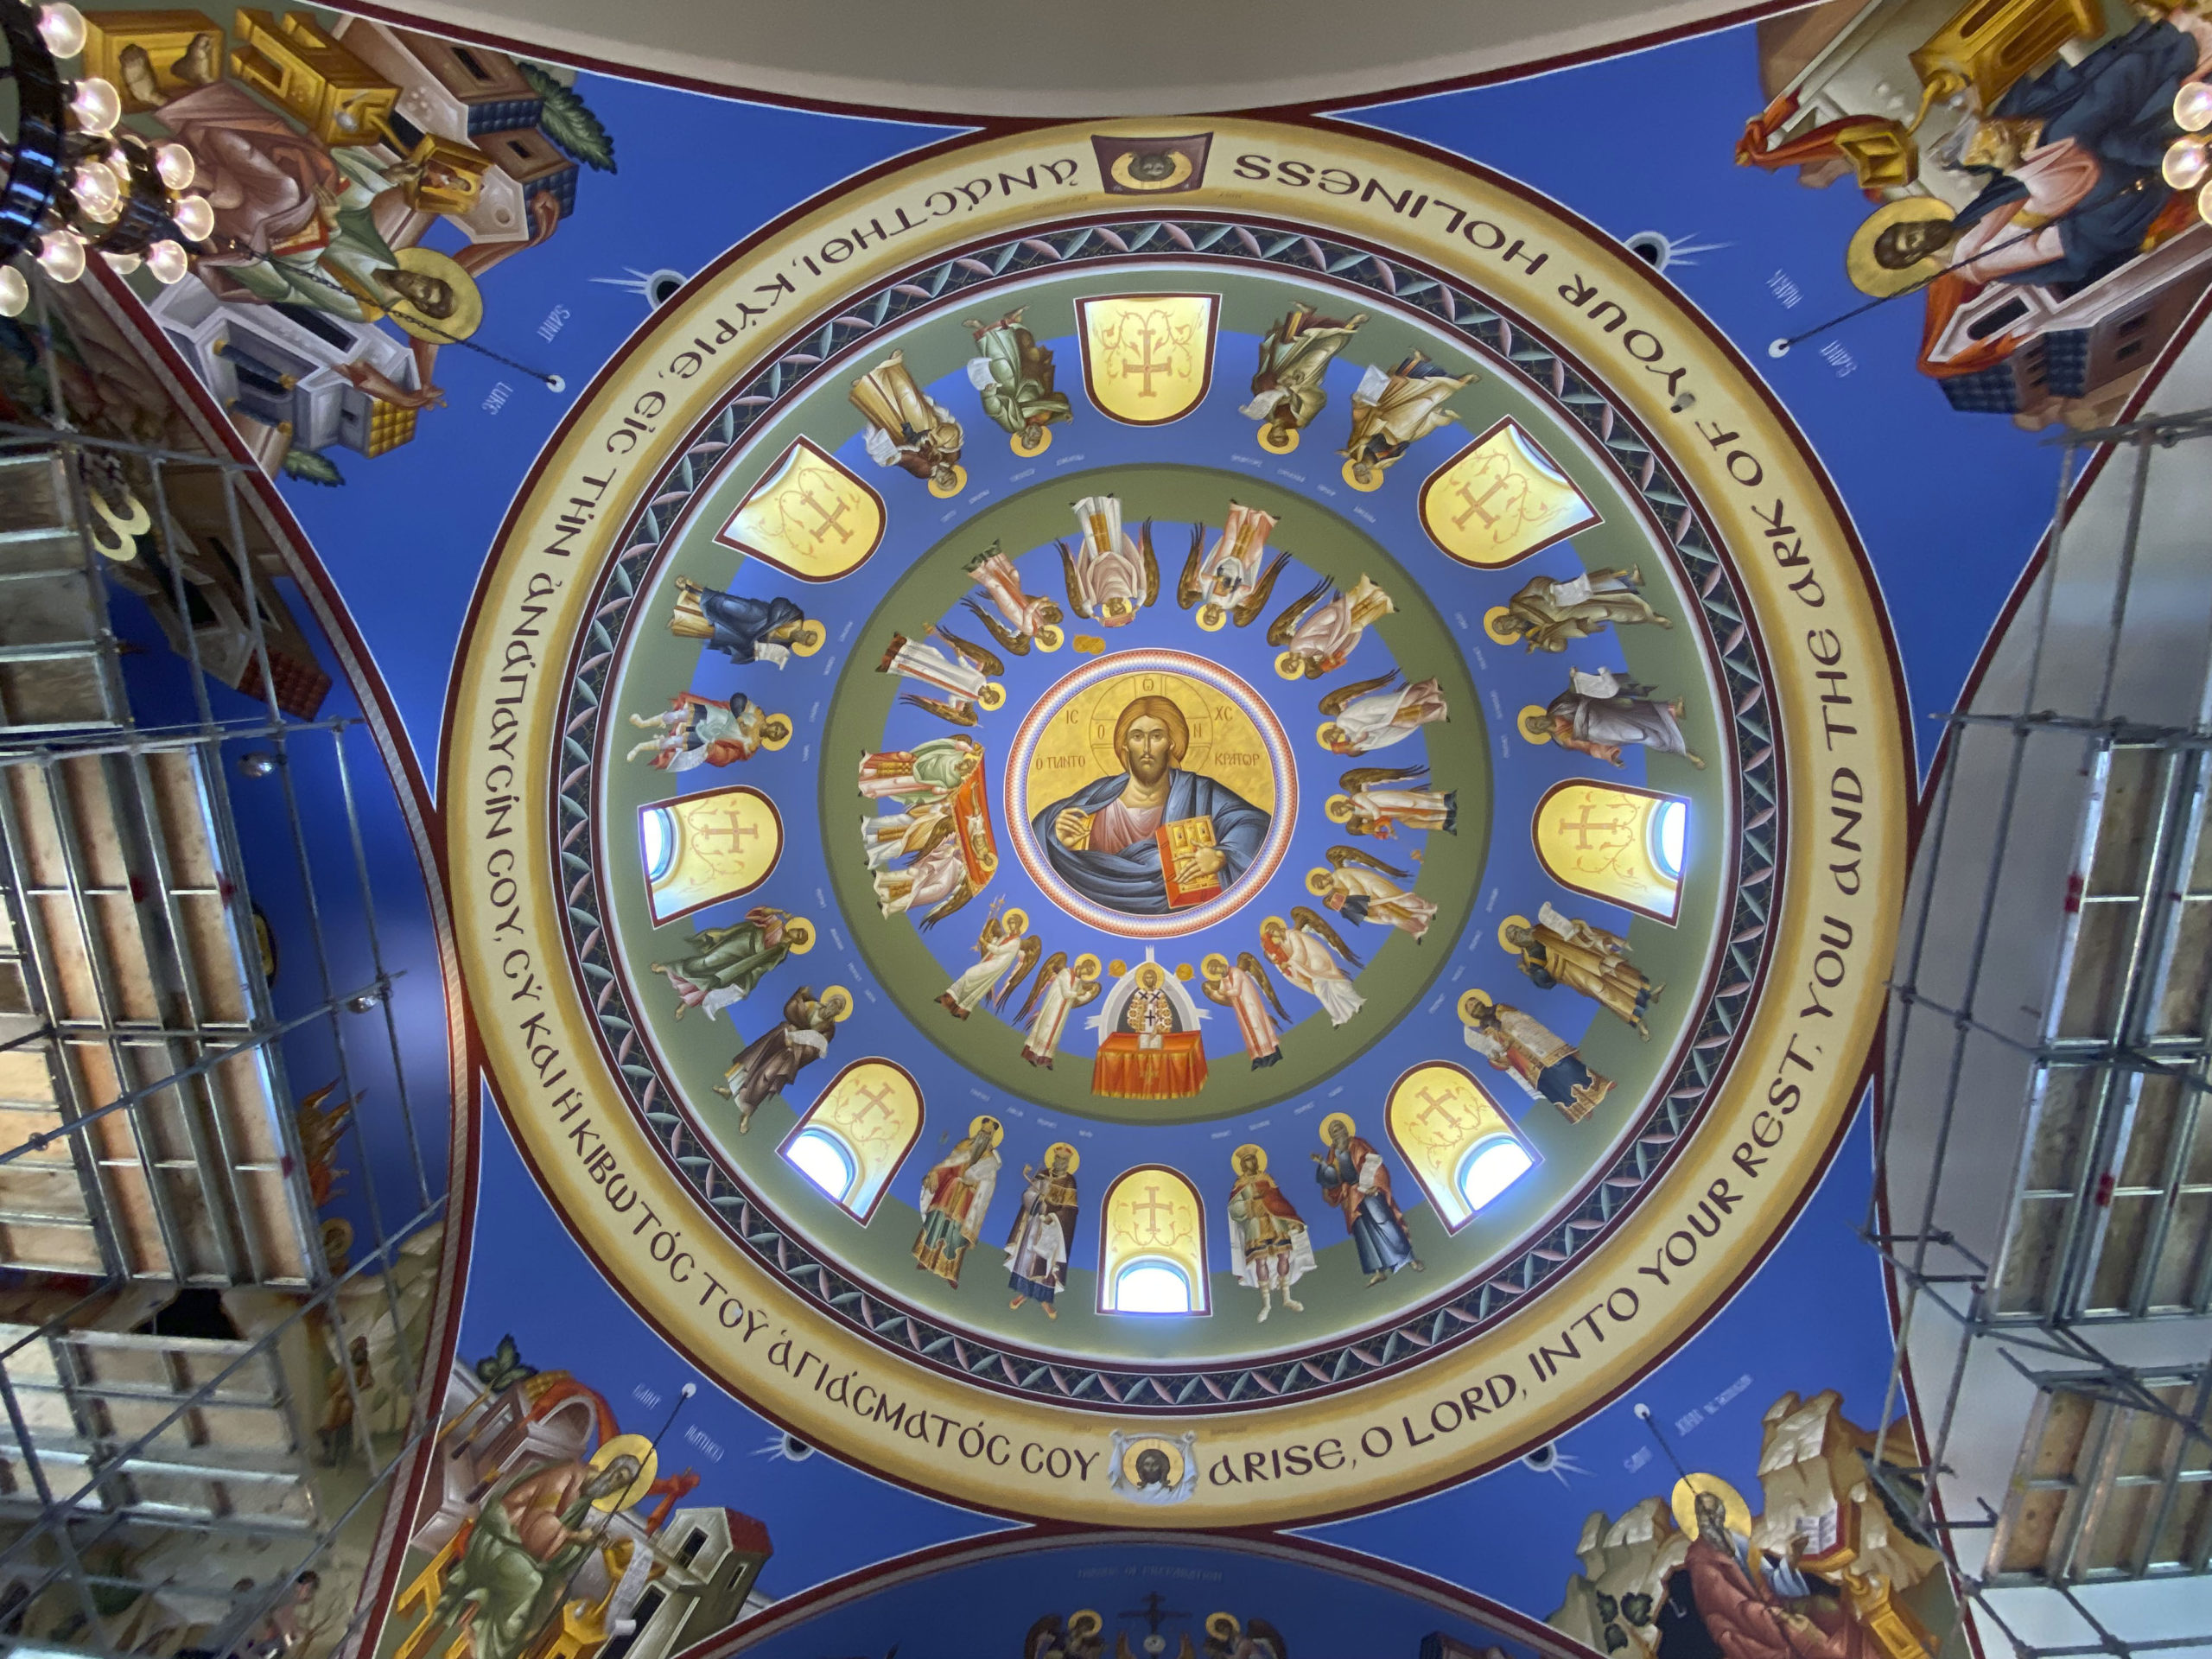 The dome of the Dormition of the Virgin Mary Greek Orthodox was done earlier by iconographer George Filippakis.   DANA SHAW